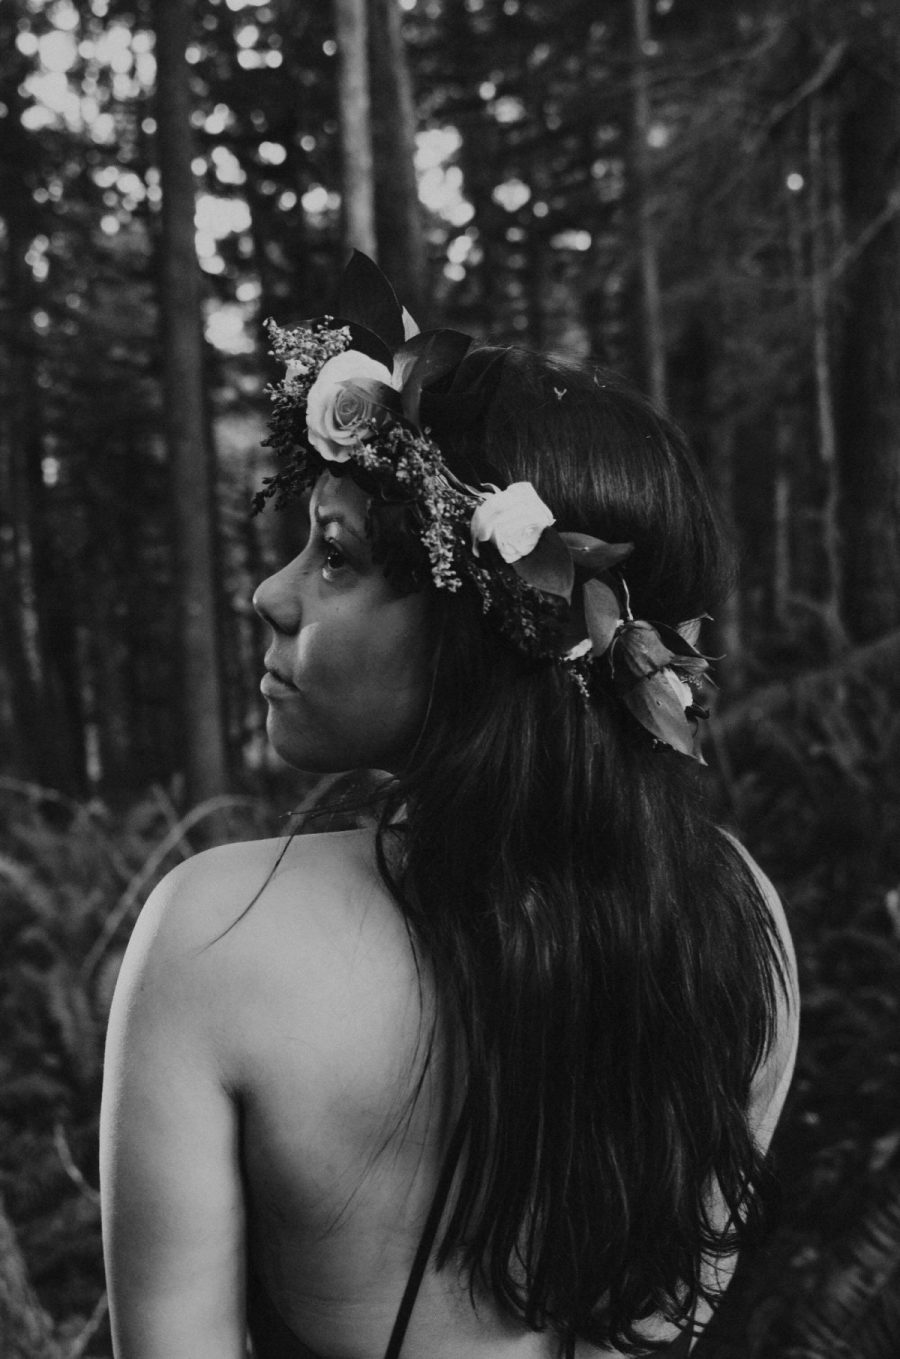 boudoir, seattle-boudoir, seattle-boudoir-photographer, boudoir-photographer, boudoir-photography, boudoir-session, boudoir-photos, wallace-falls-washington, wallace-falls, forest, outdoor-boudoir, naked-in-the-woods, trees, evergreen-trees, ferns, flower-crown, headpiece,